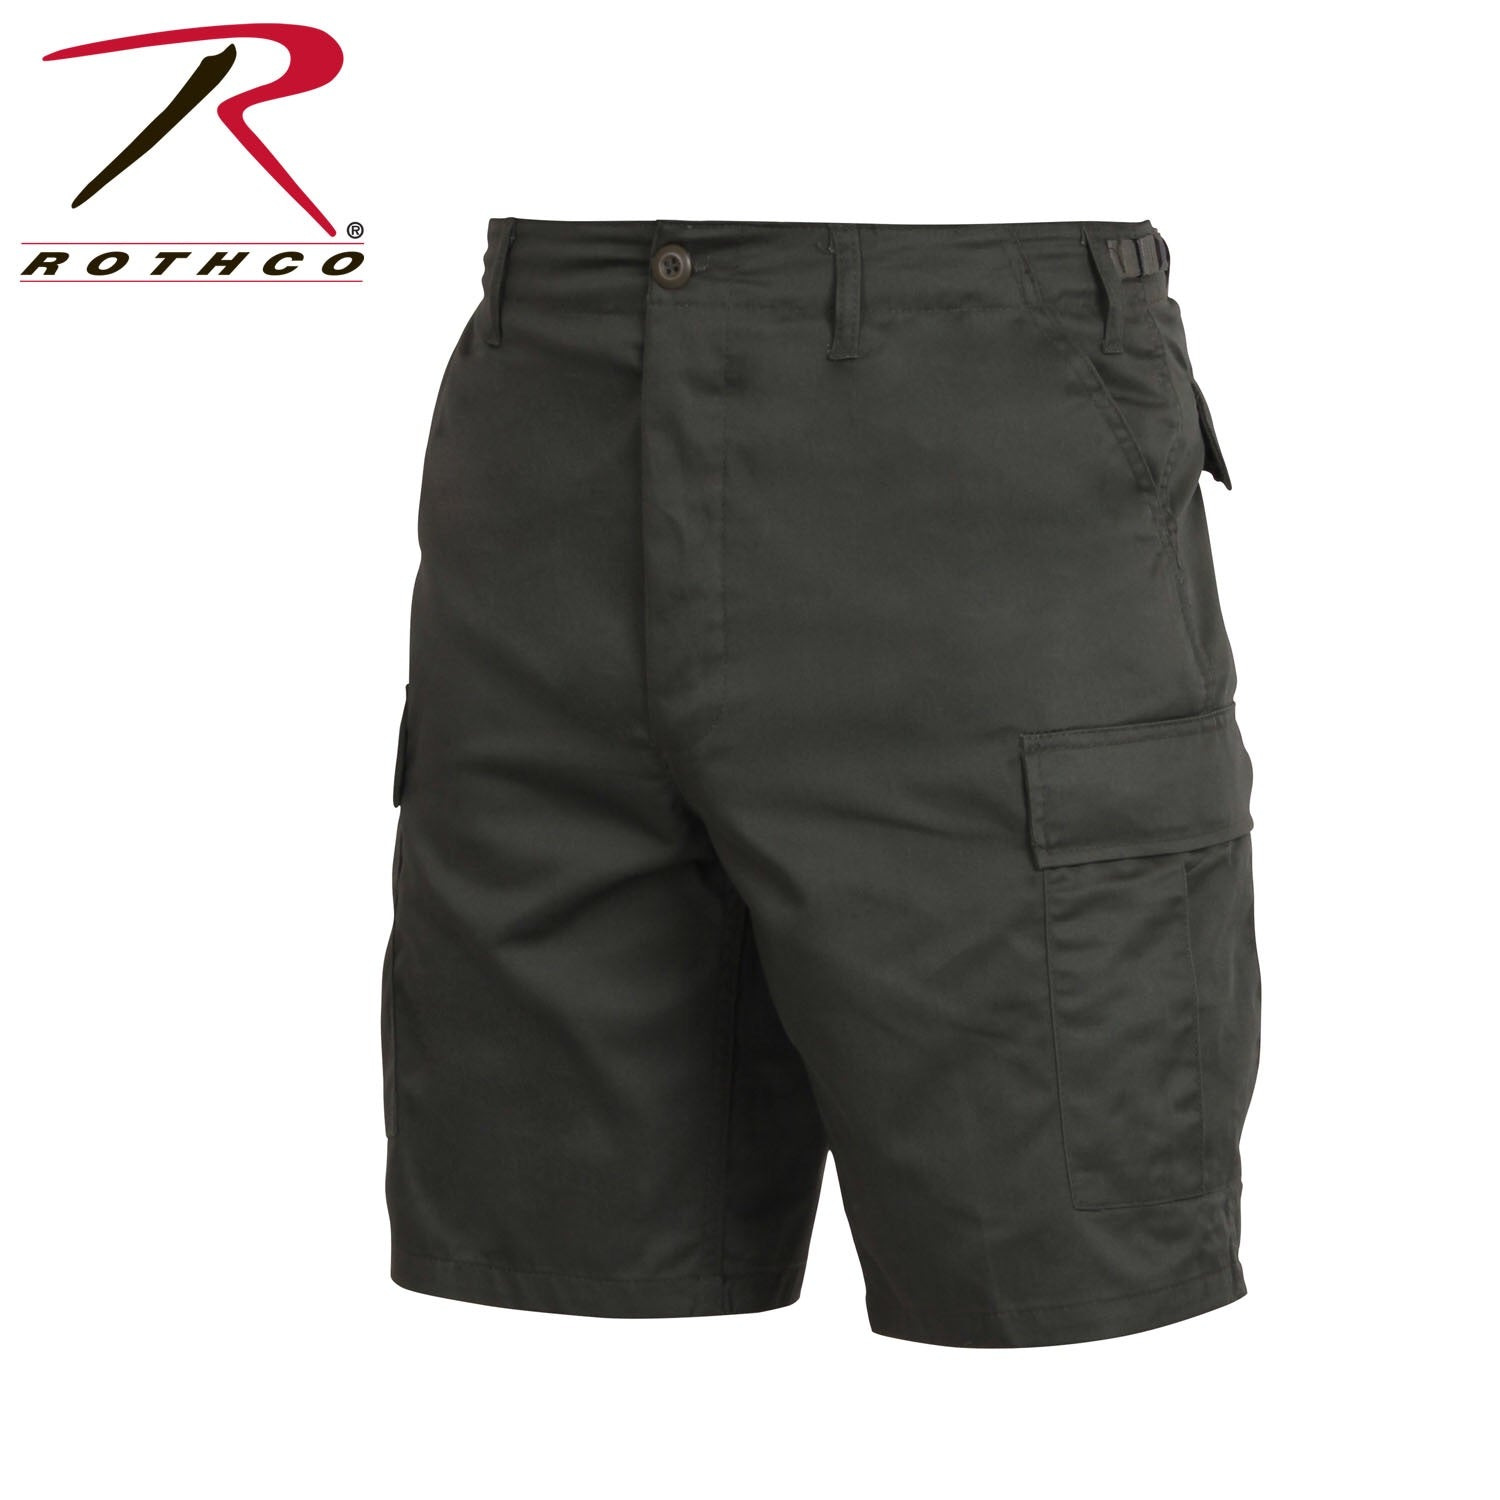 Rothco BDU Shorts Black Zipper